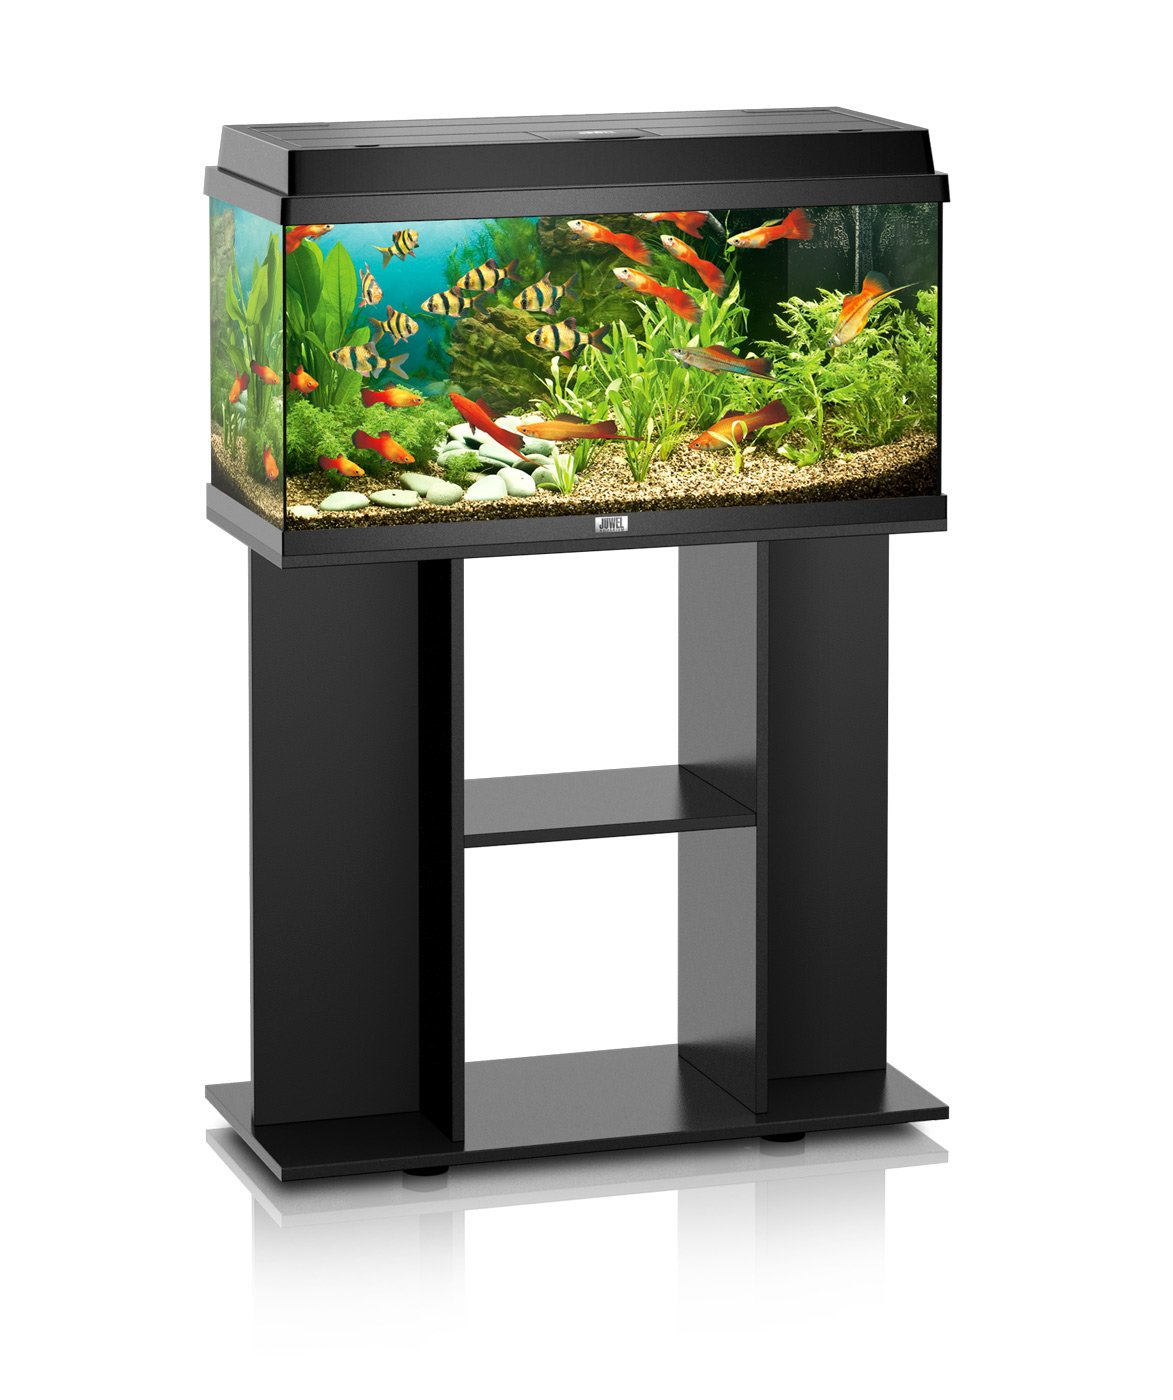 prix aquarium 80 litres. Black Bedroom Furniture Sets. Home Design Ideas